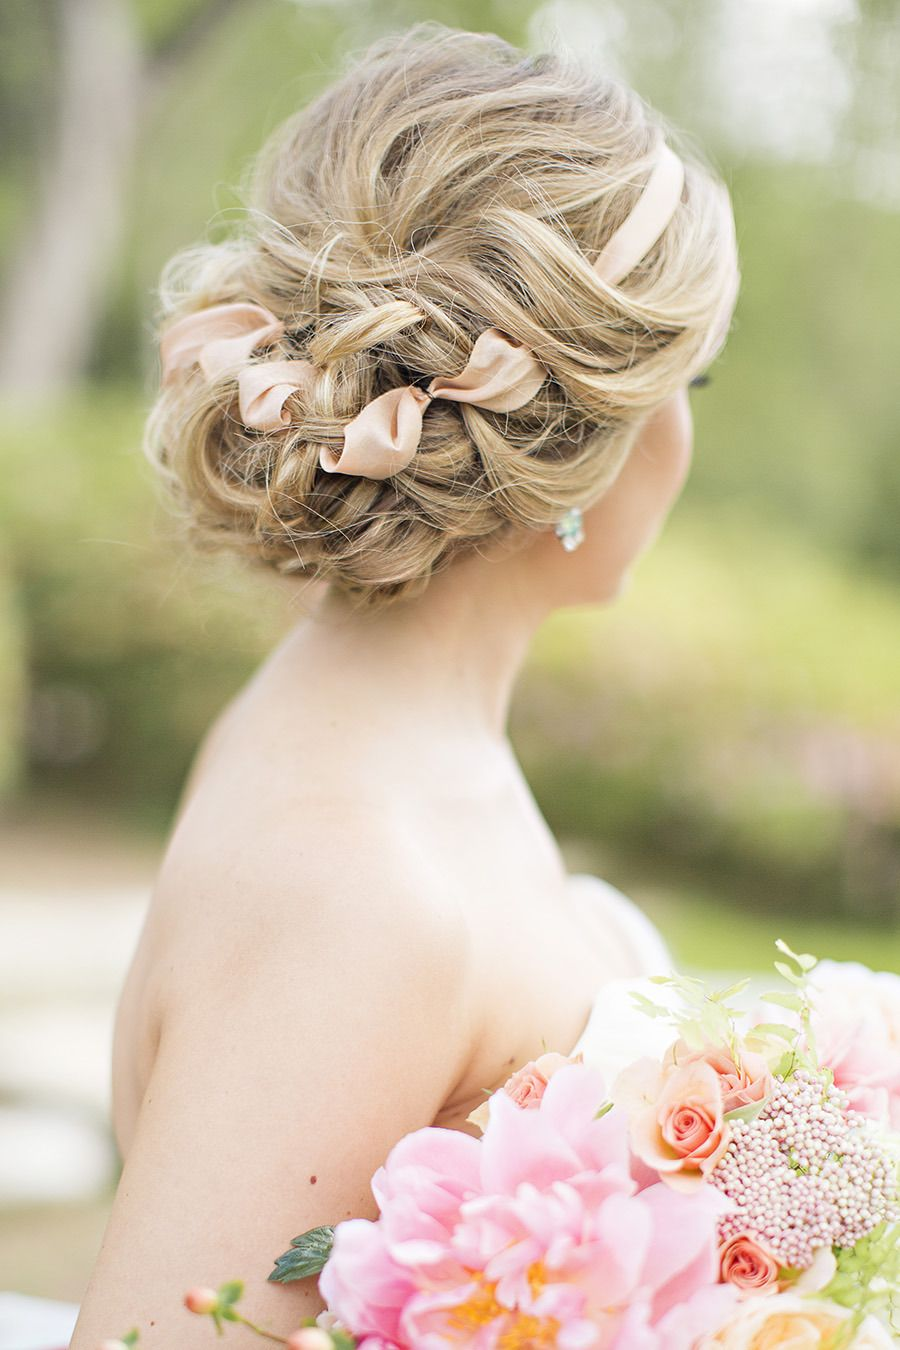 seaside garden wedding inspiration | bridal hair | romantic